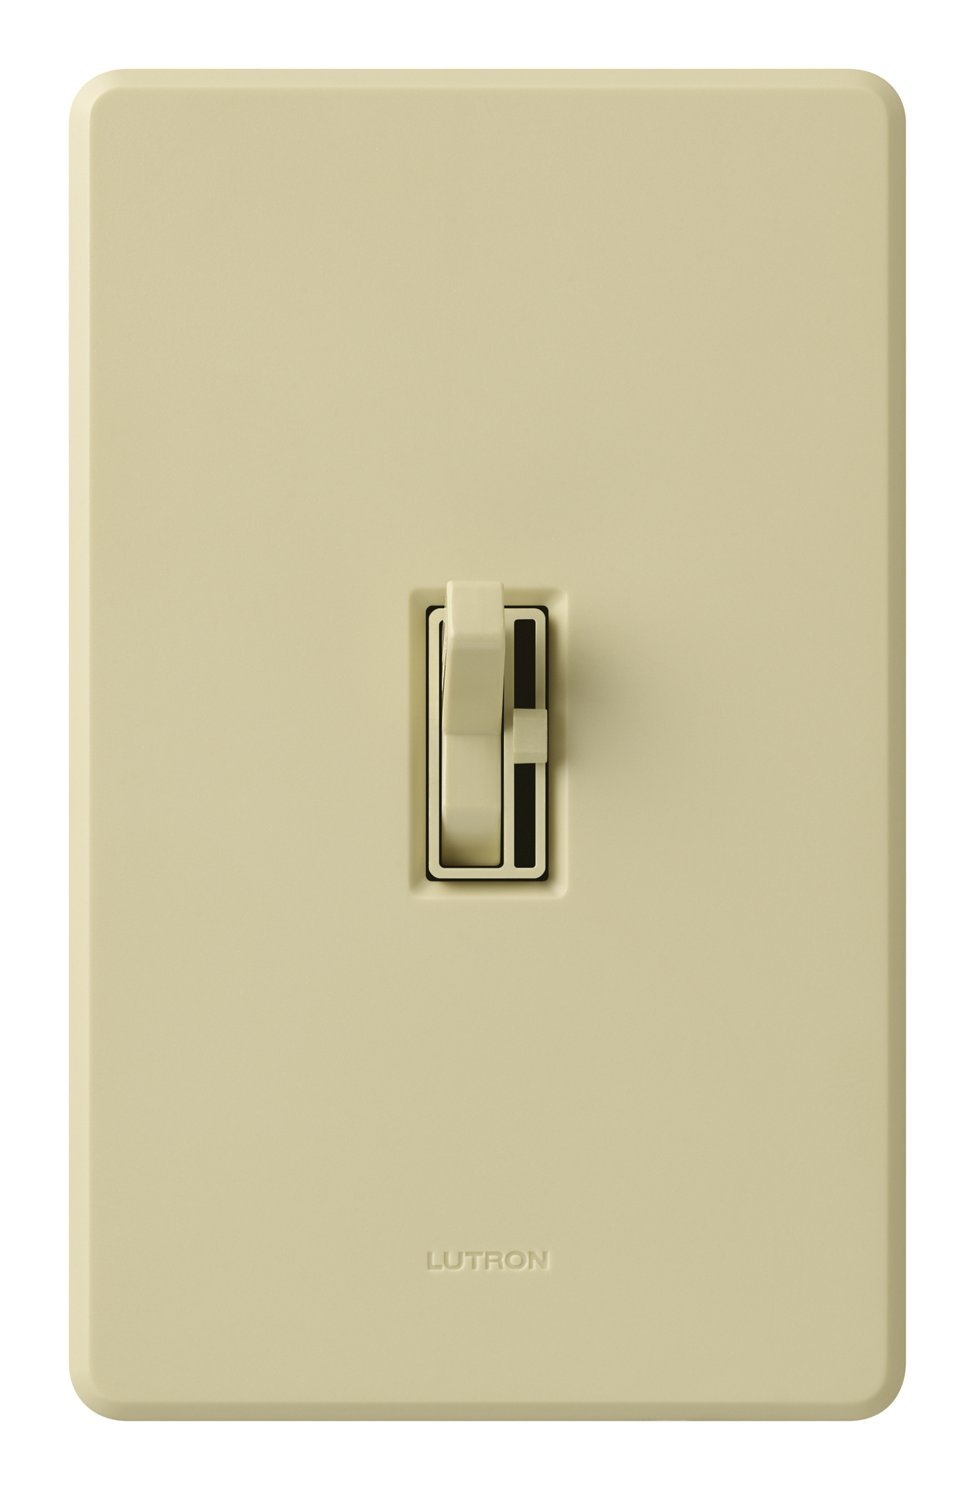 lutron tg 600pnlh wh toggler 600w preset dimmer with nightlight white wall dimmer switches amazon com